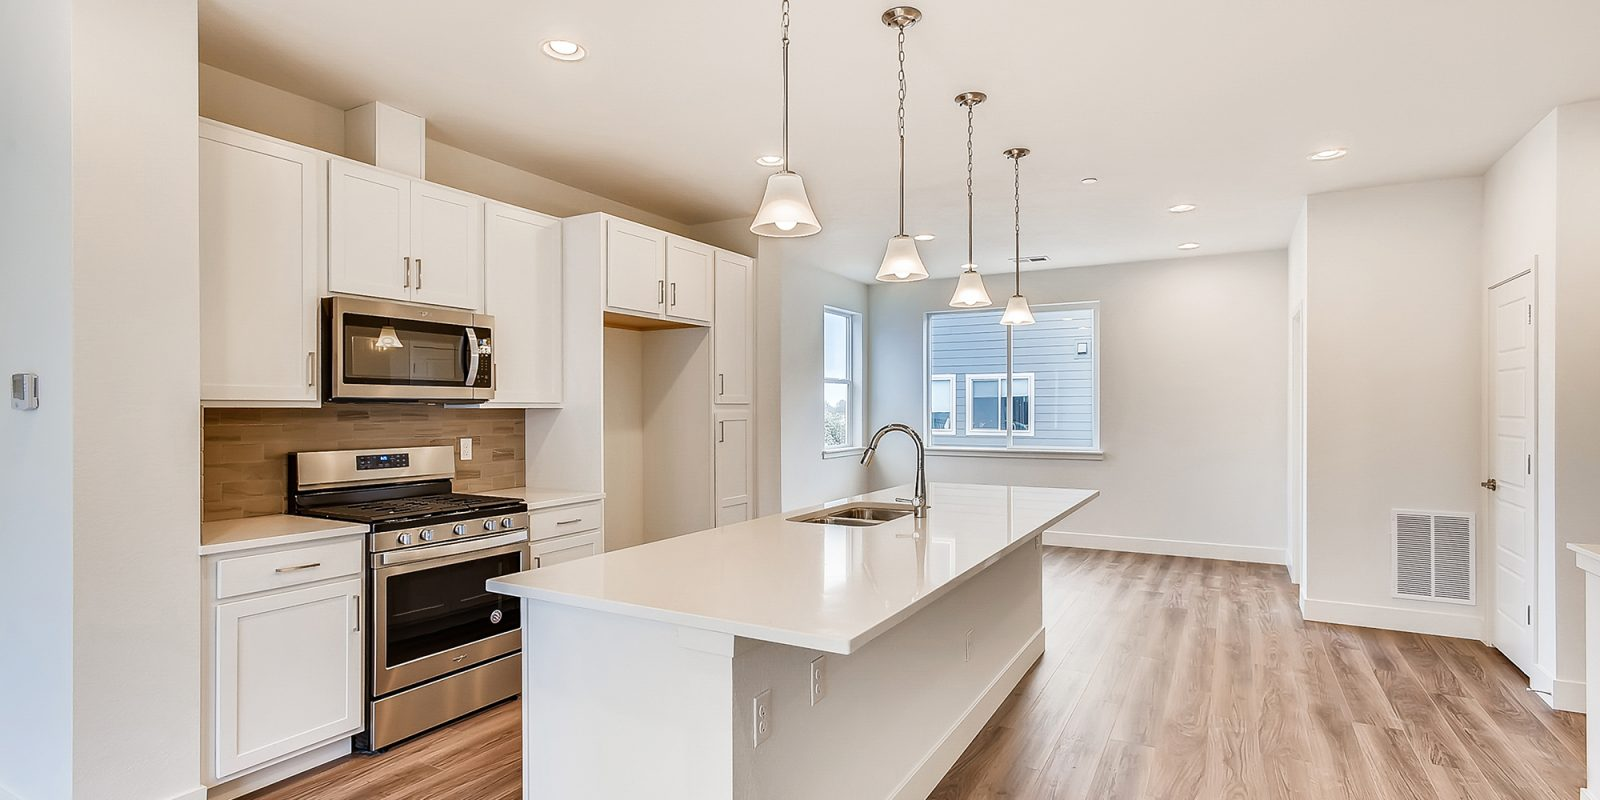 WestRidge DoMore Rows: Oasis - Kitchen and Dining